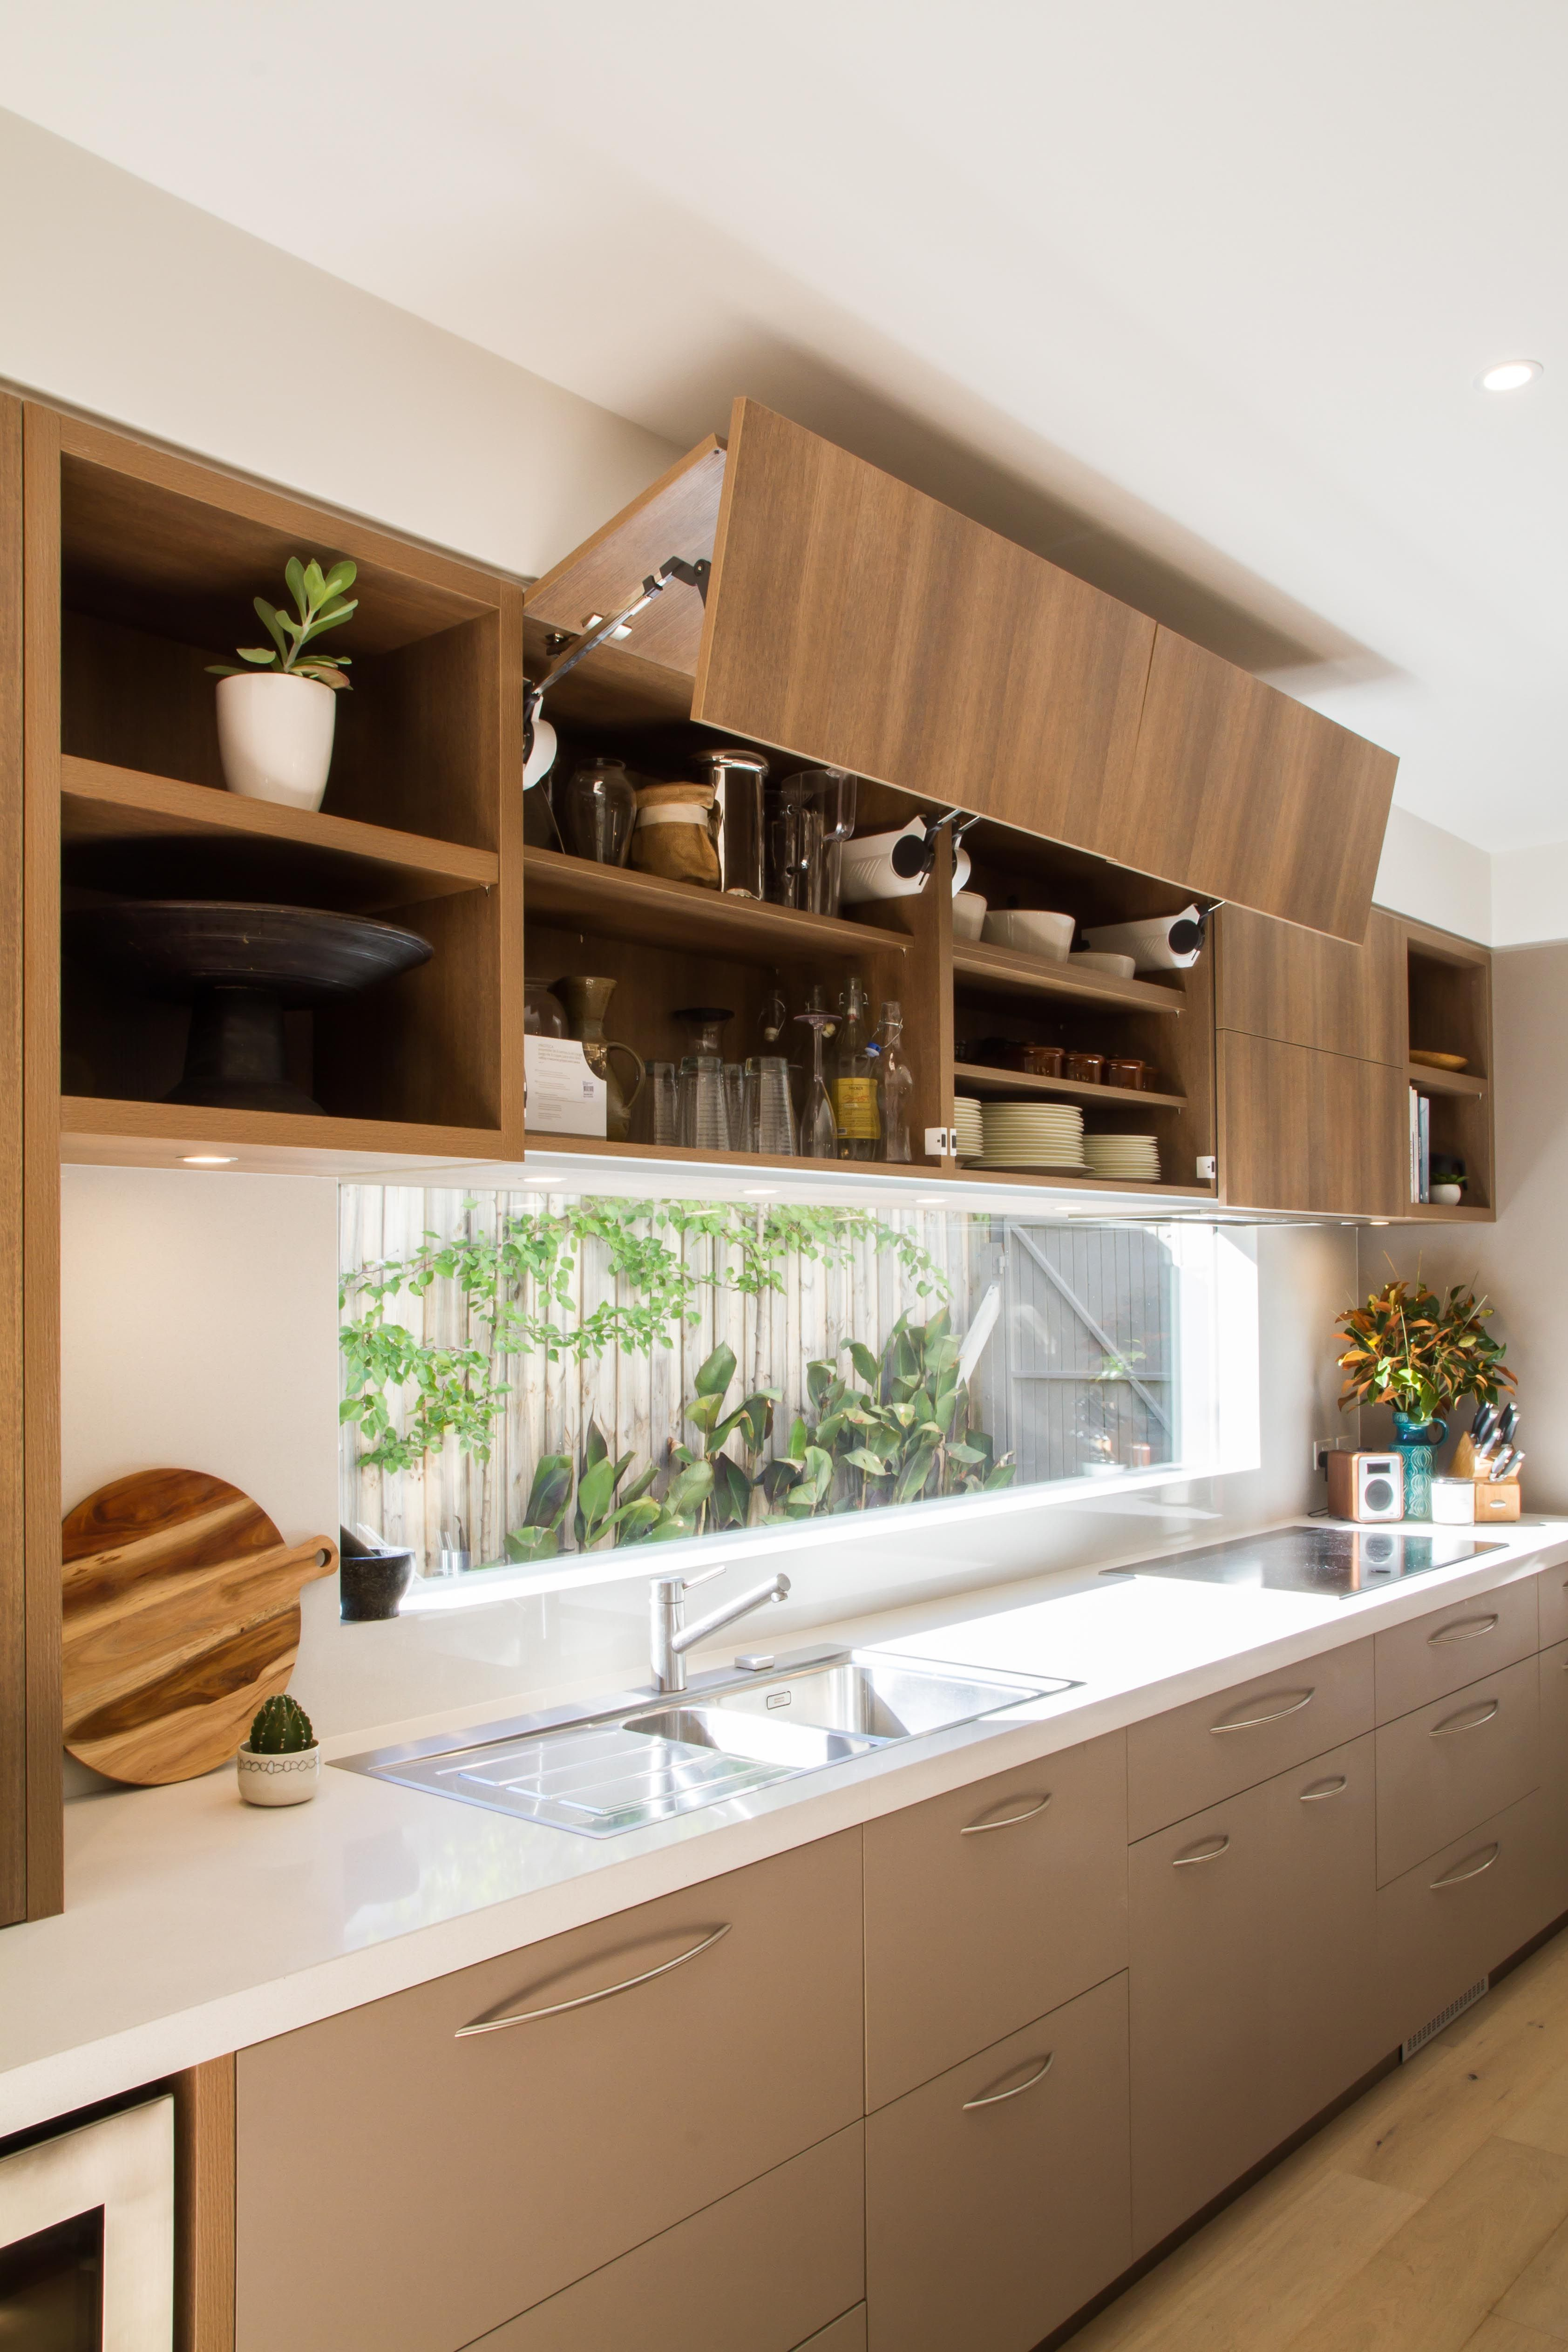 Best Large Modern Contemporary Kitchen In Warm Tones With A 400 x 300